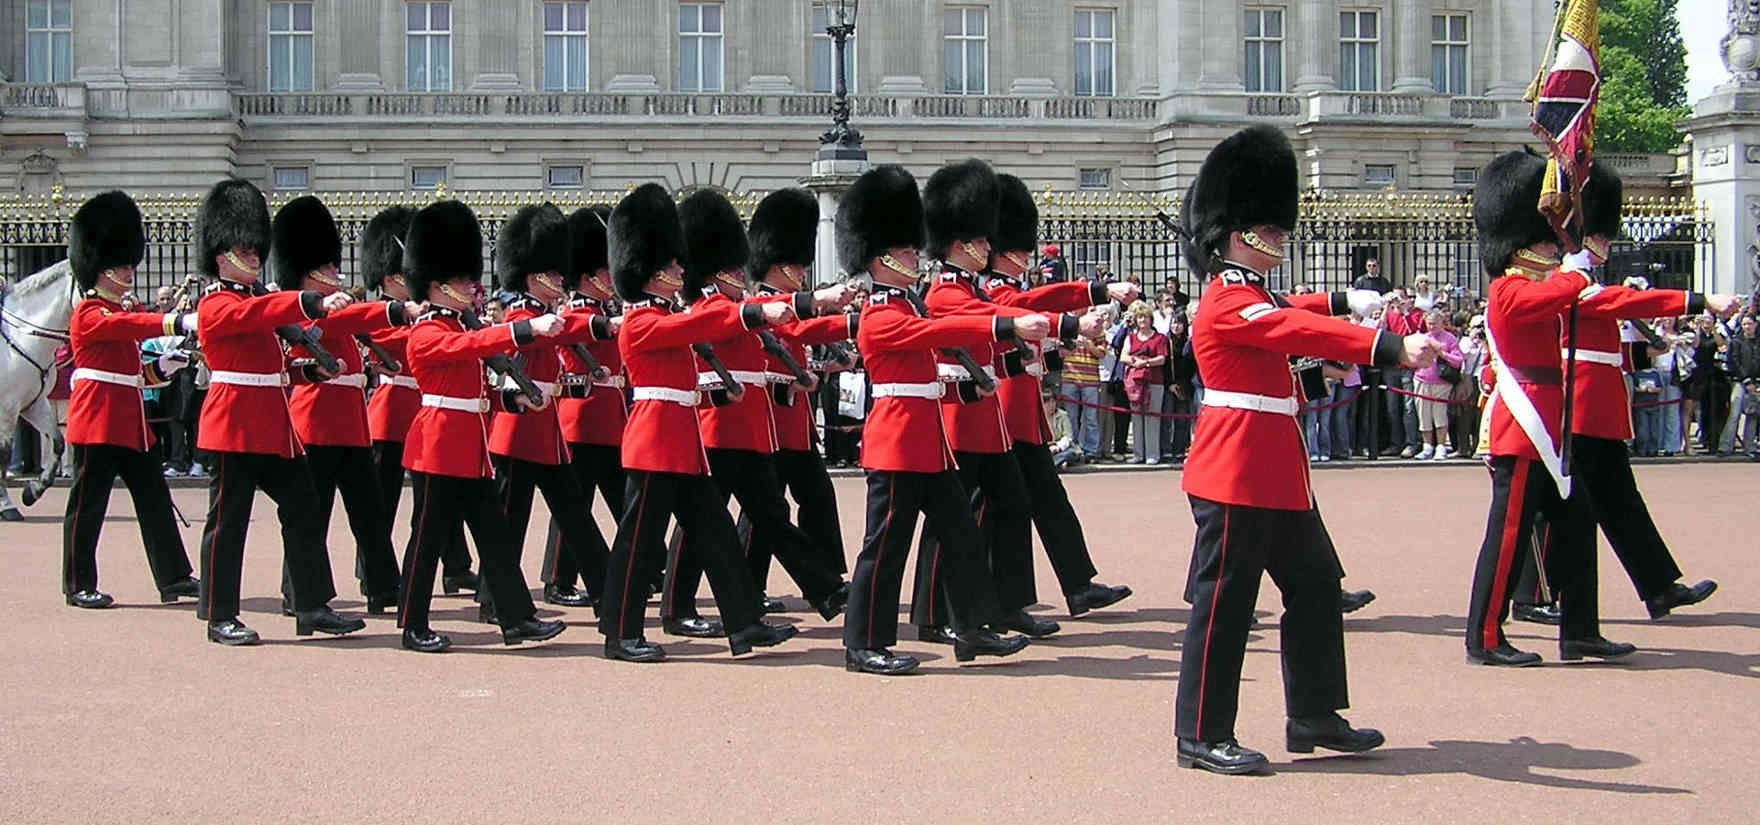 Buckingham Palace Changing Of The Guard Times